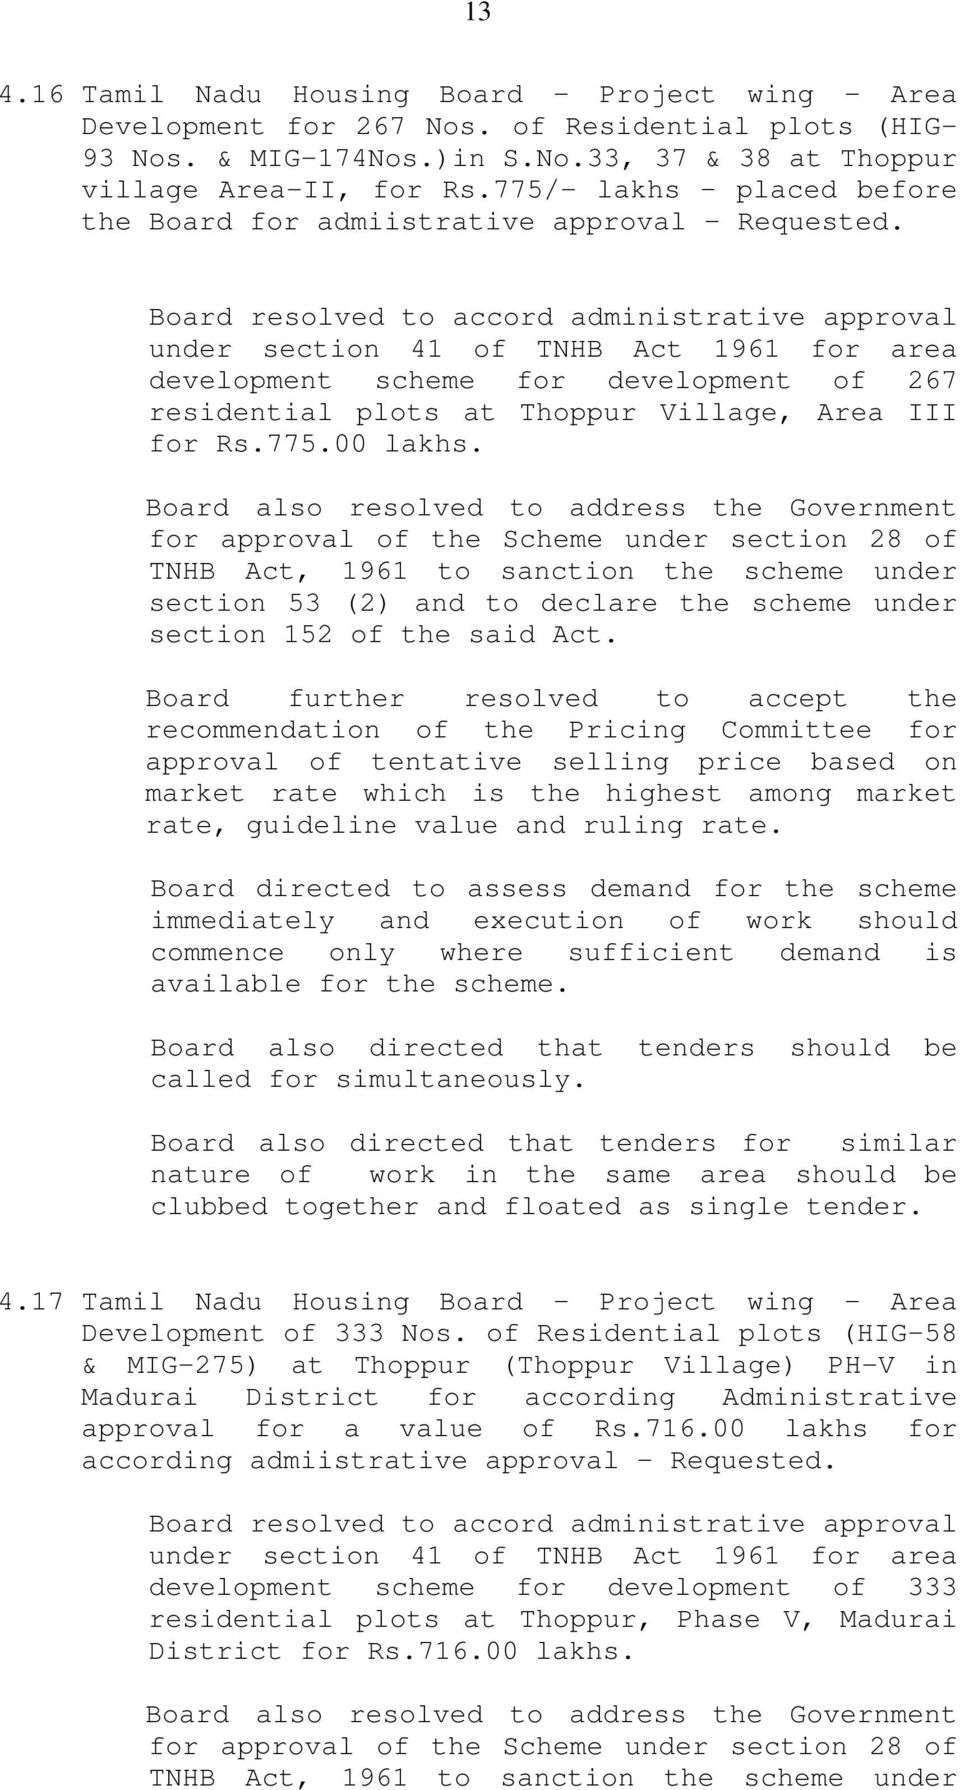 Board resolved to accord administrative approval under section 41 of TNHB Act 1961 for area development scheme for development of 267 residential plots at Thoppur Village, Area III for Rs.775.